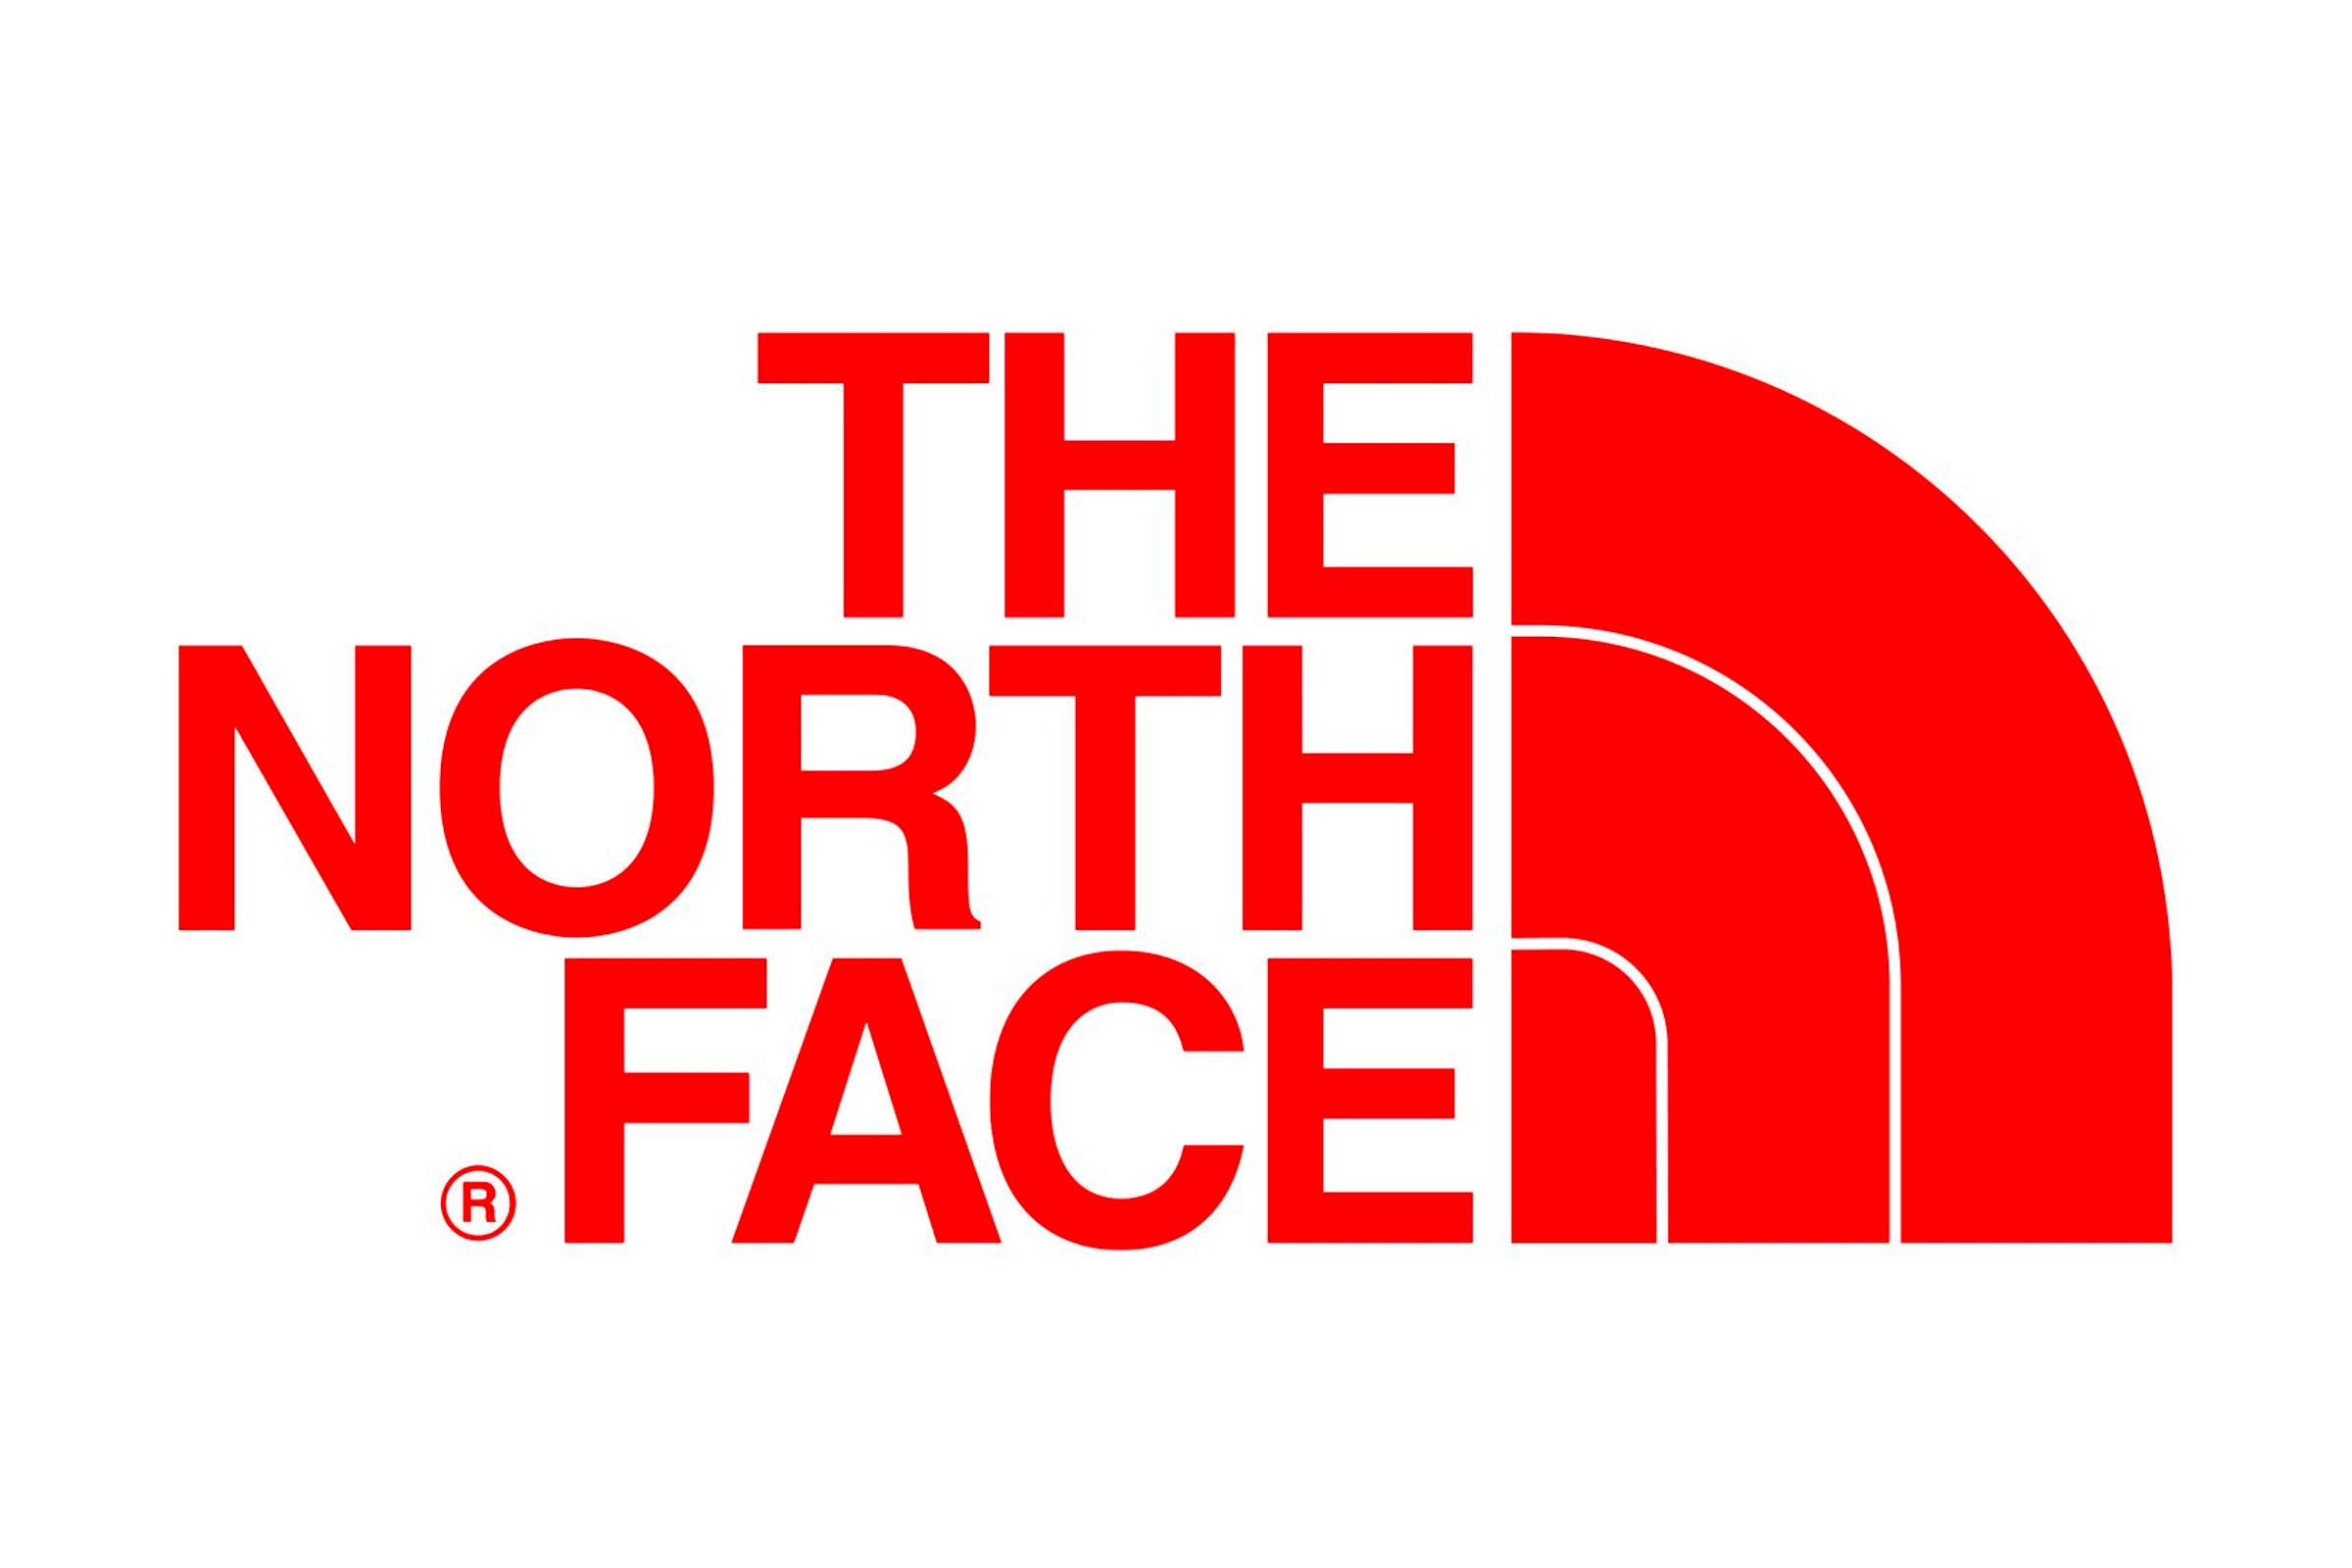 10. The North Face